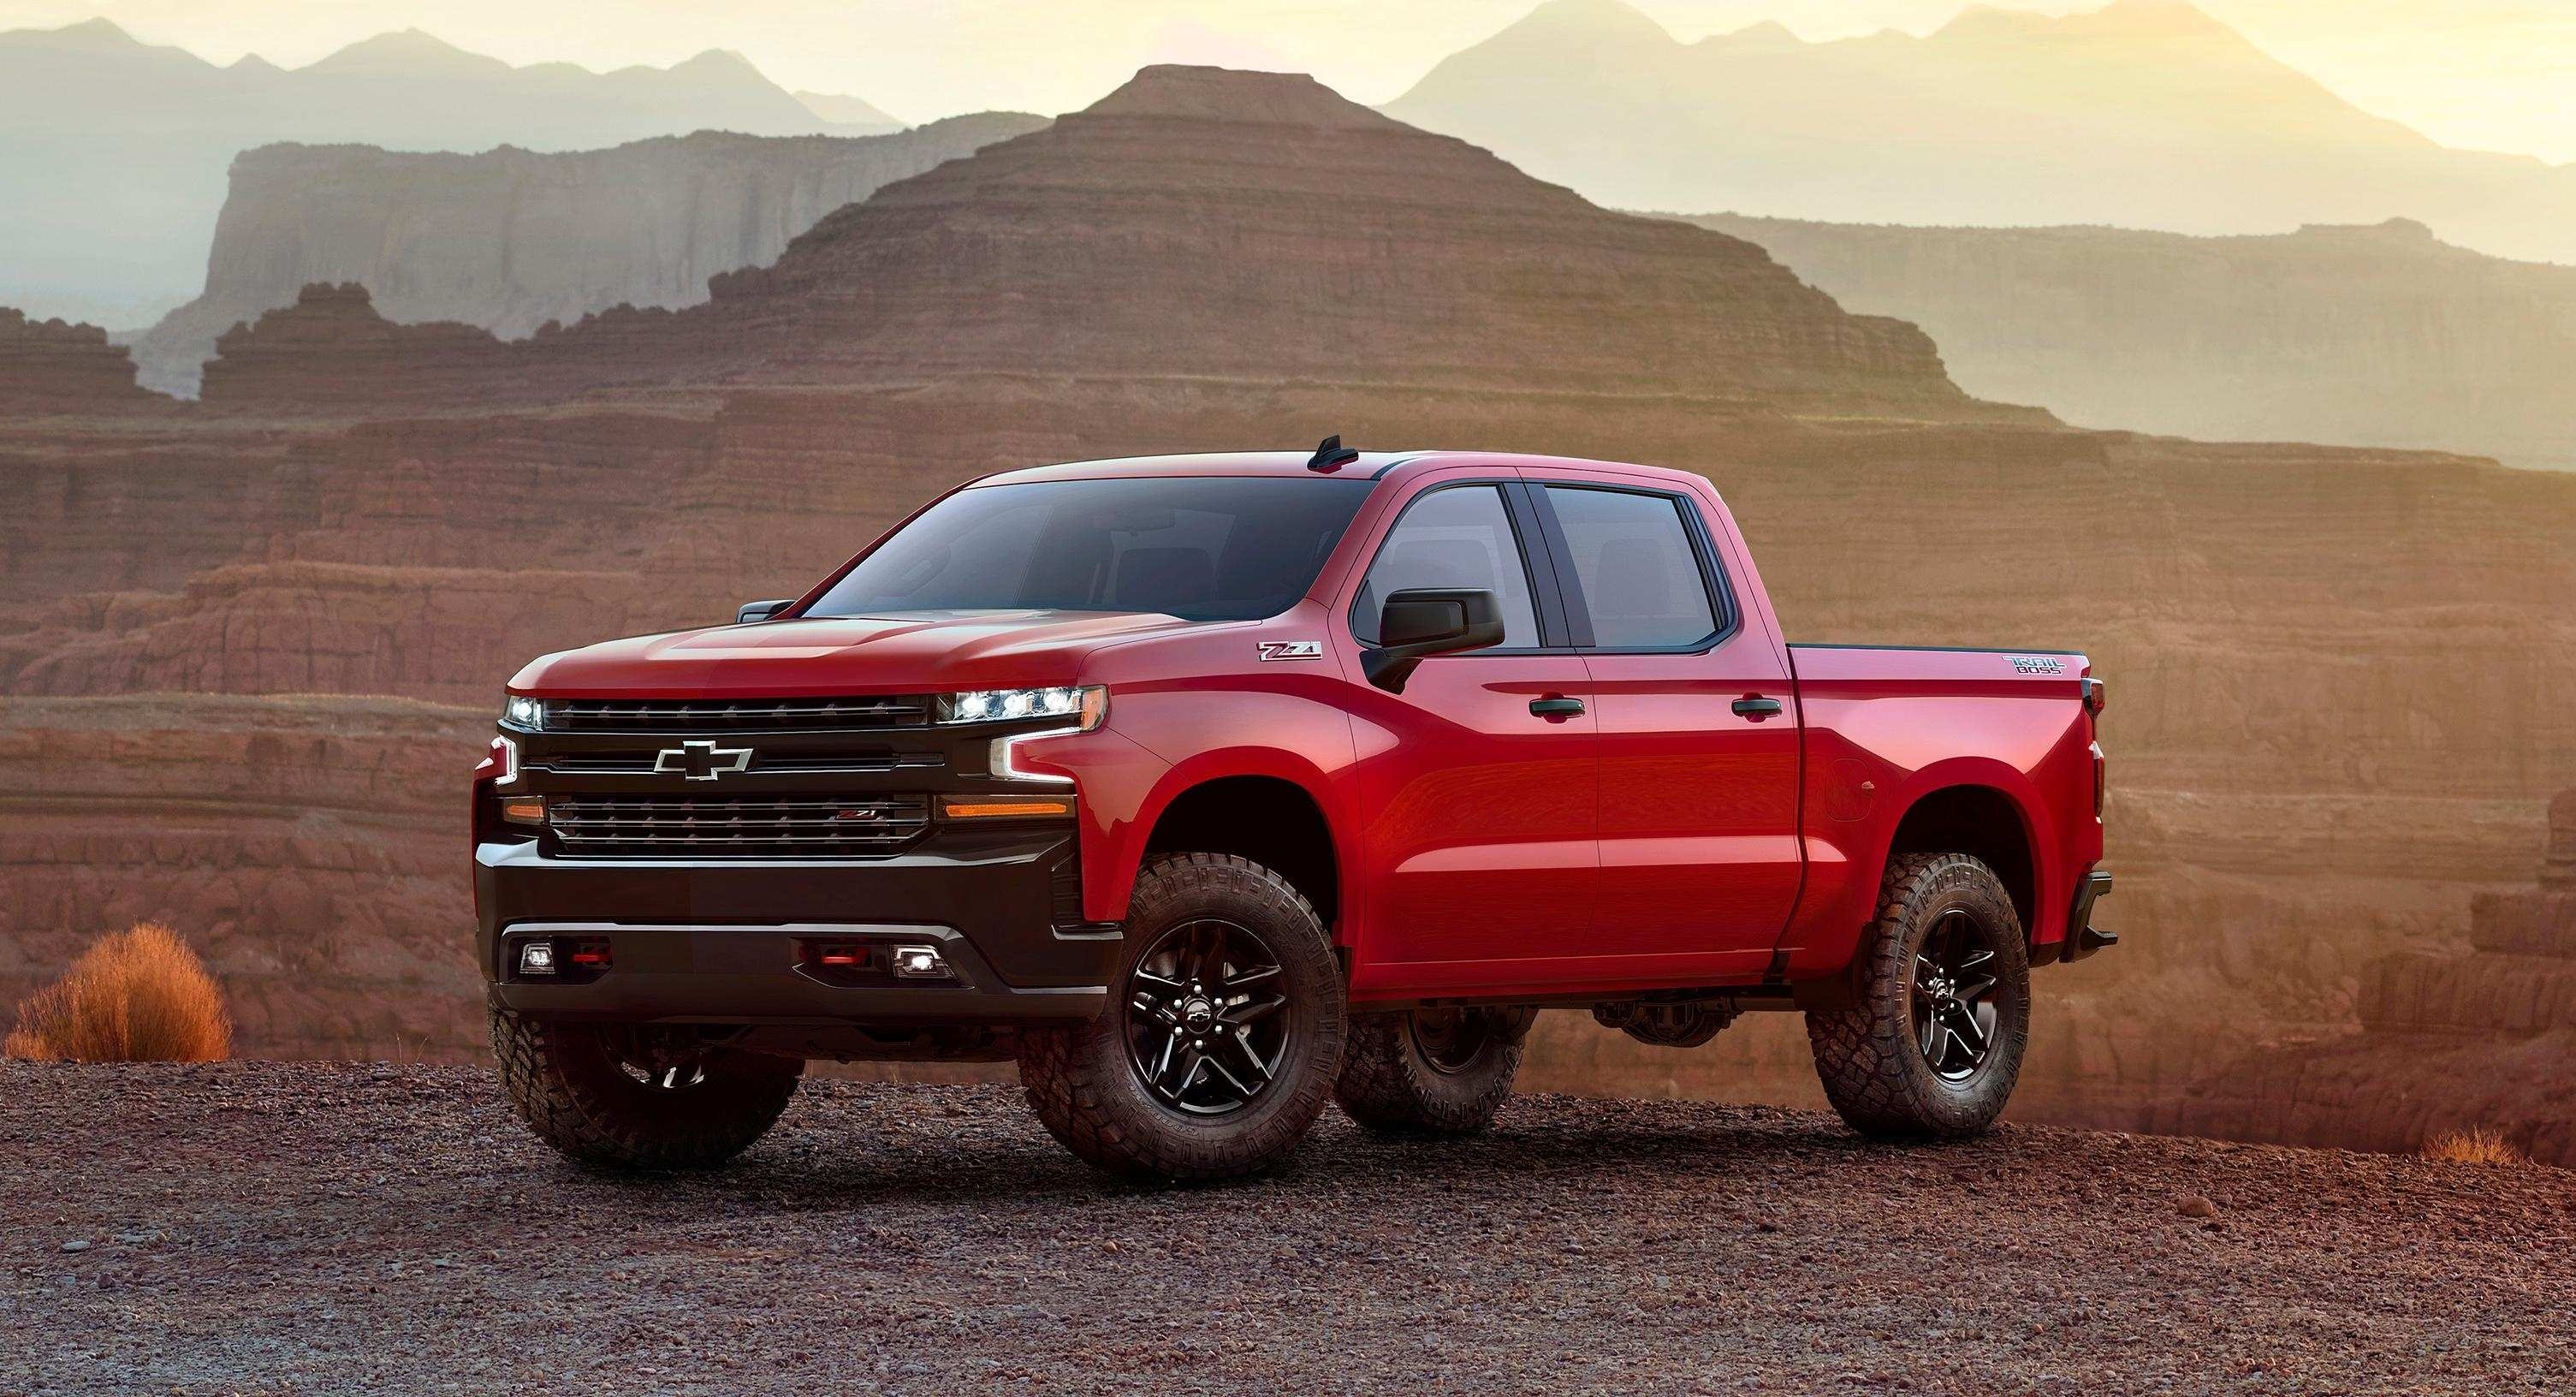 88 All New 2019 Chevy Cheyenne Ss Pictures